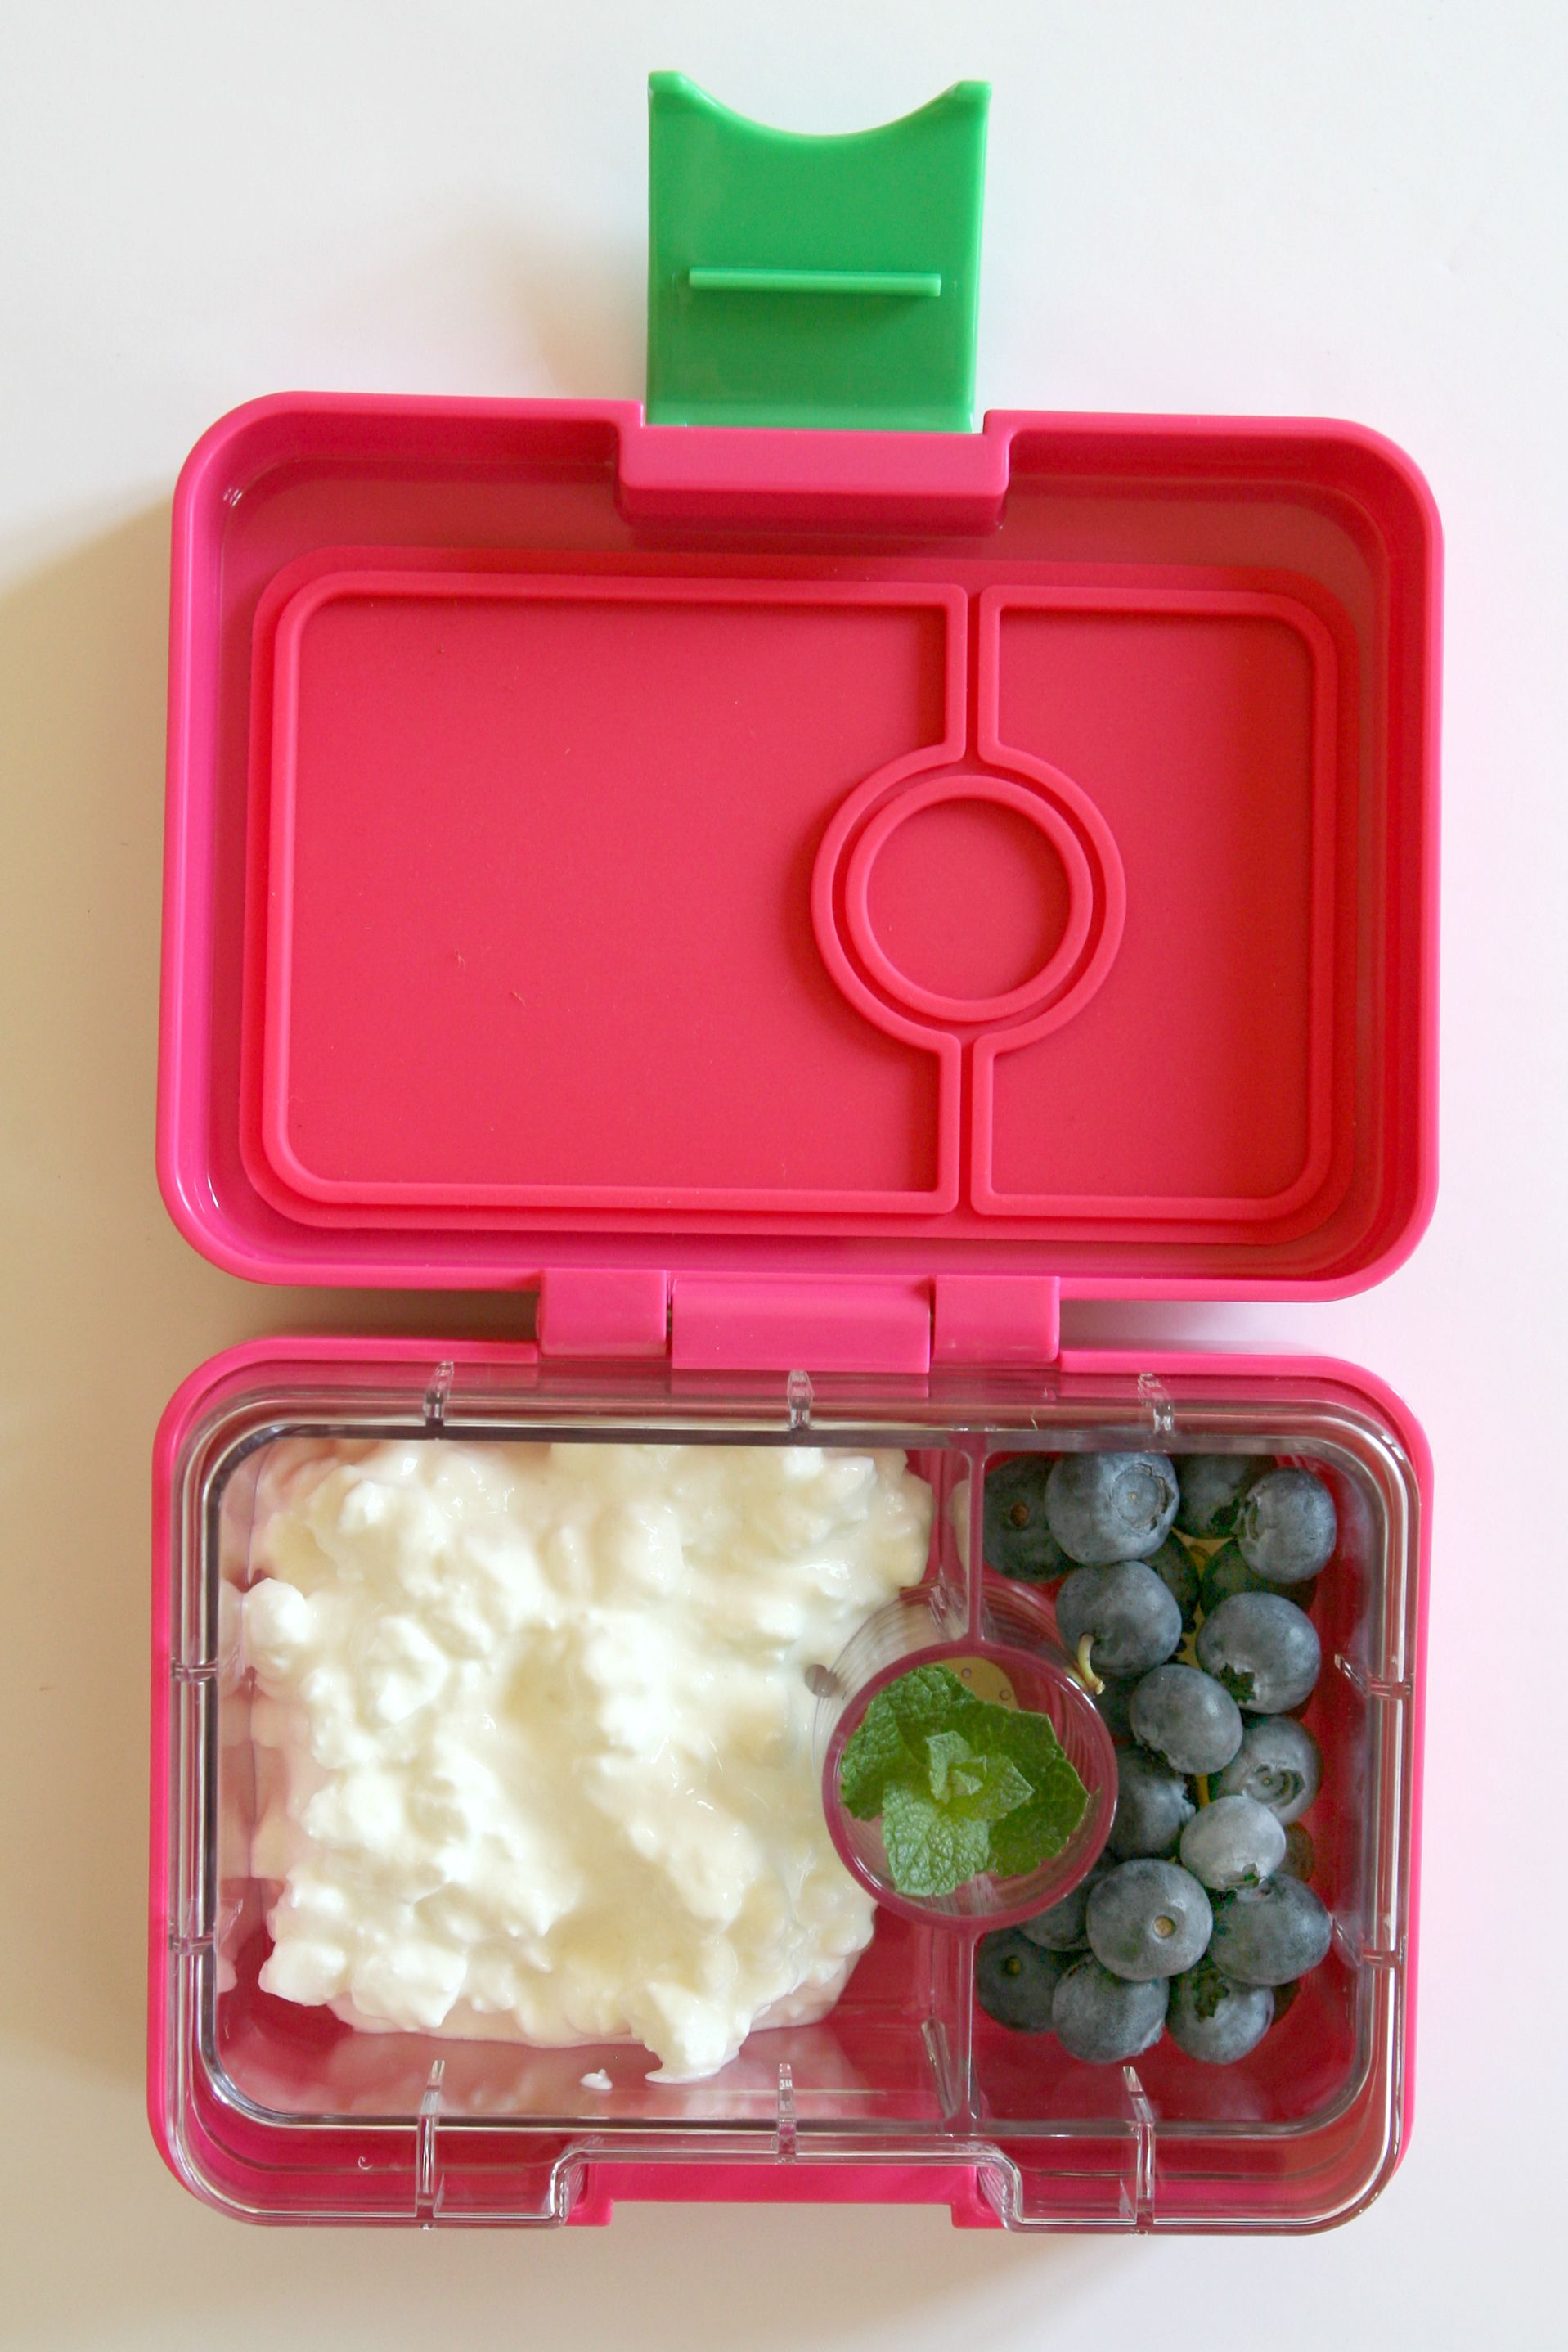 100 calorie snack: half a cup of cottage cheese, a handful of